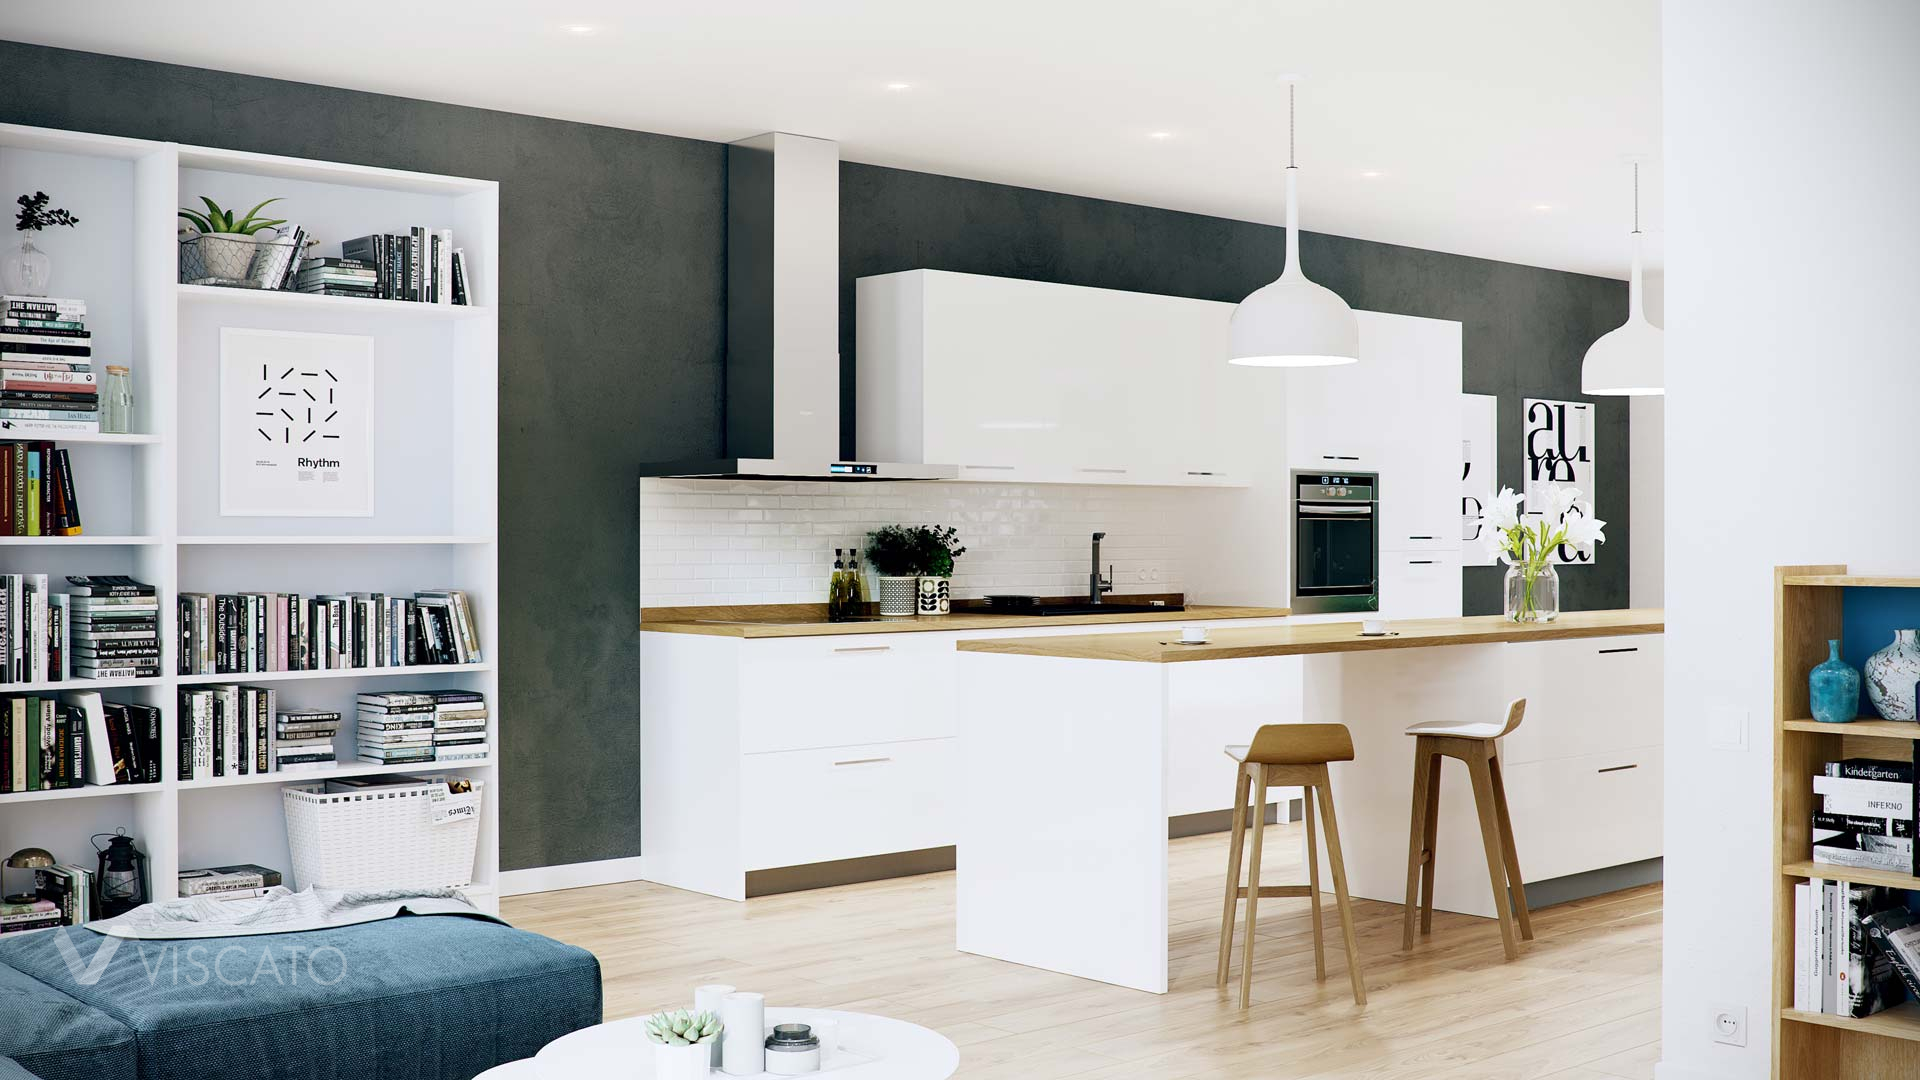 White spacious kitchen, Viscato 3D